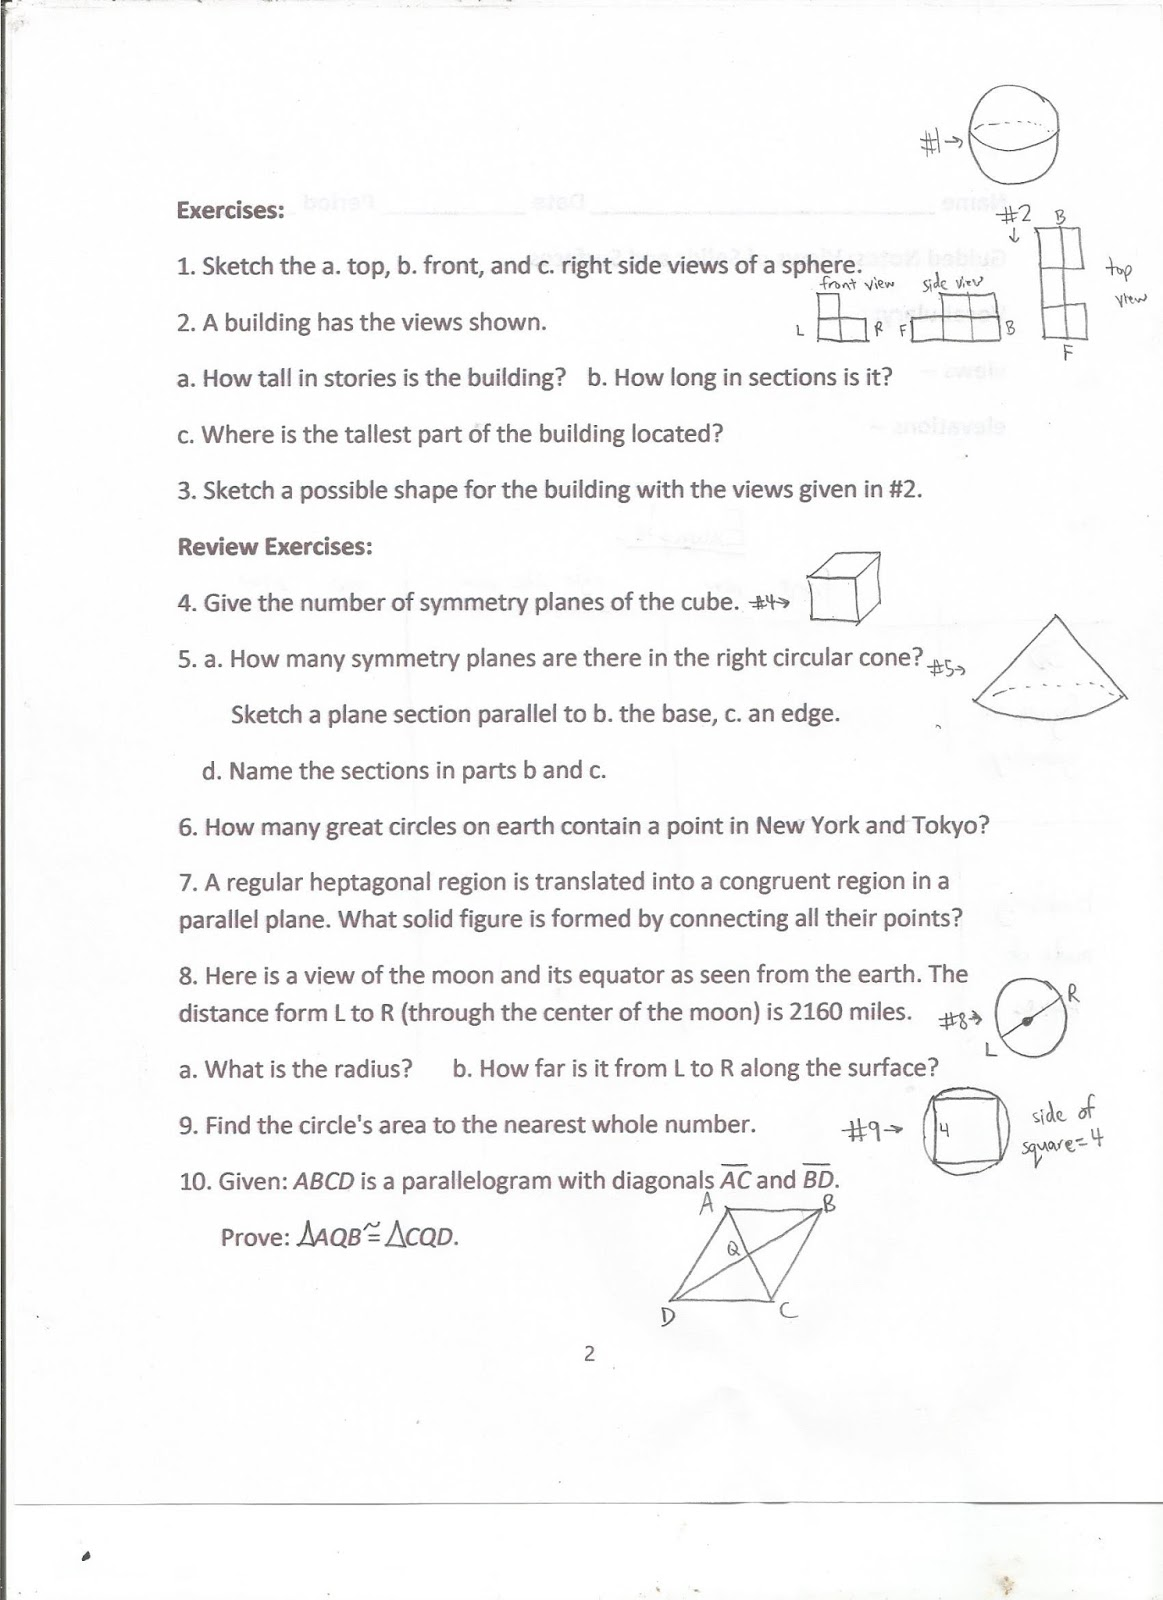 worksheet Congruent And Similar Figures Worksheet geometry common core style january 2018 the worksheet with examples of both a 3d figure such as pyramid and block building similar to 2 on back respective front right